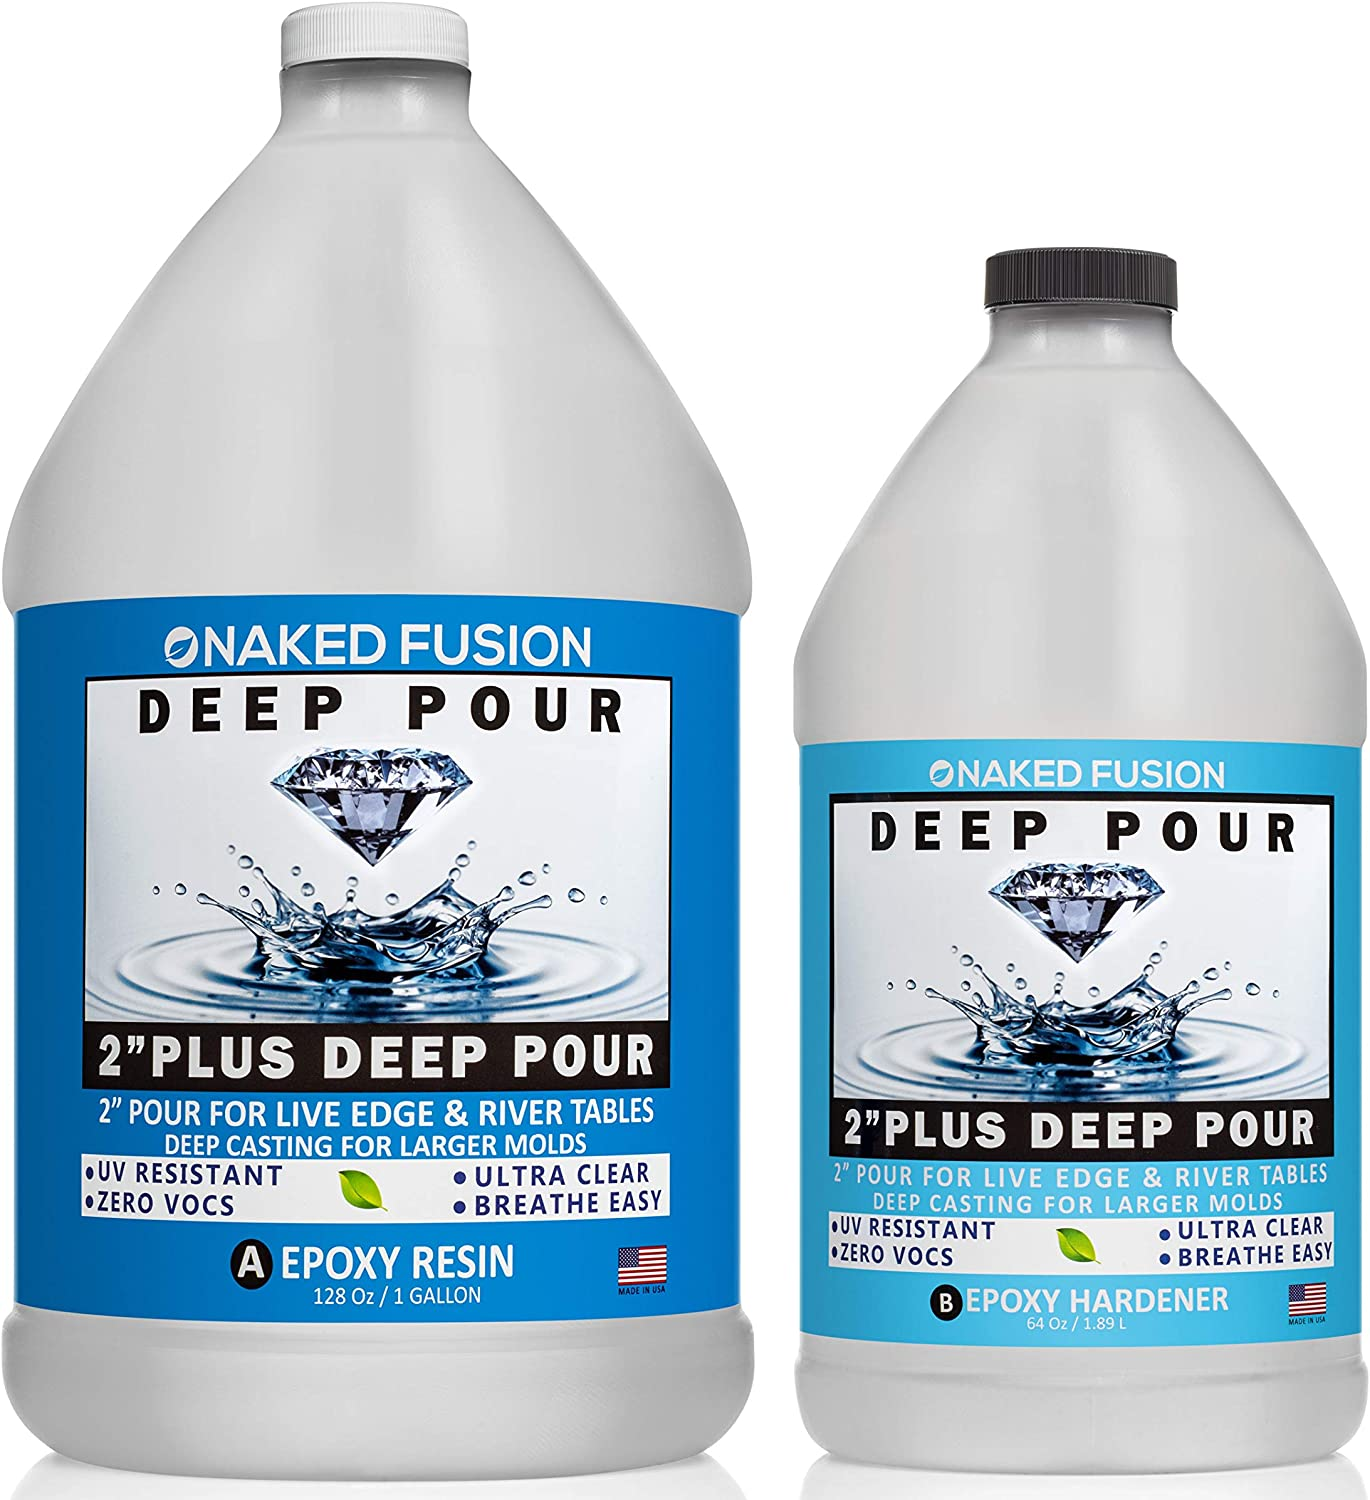 DEEP Pour Resin Ultra Super Gloss Coating Slow Cure 3 inch pours Squid-DEEP Deeper Clear Casting River Tables Non-Toxic Clear 3 L Casting Resin DIY EPOXY Resin